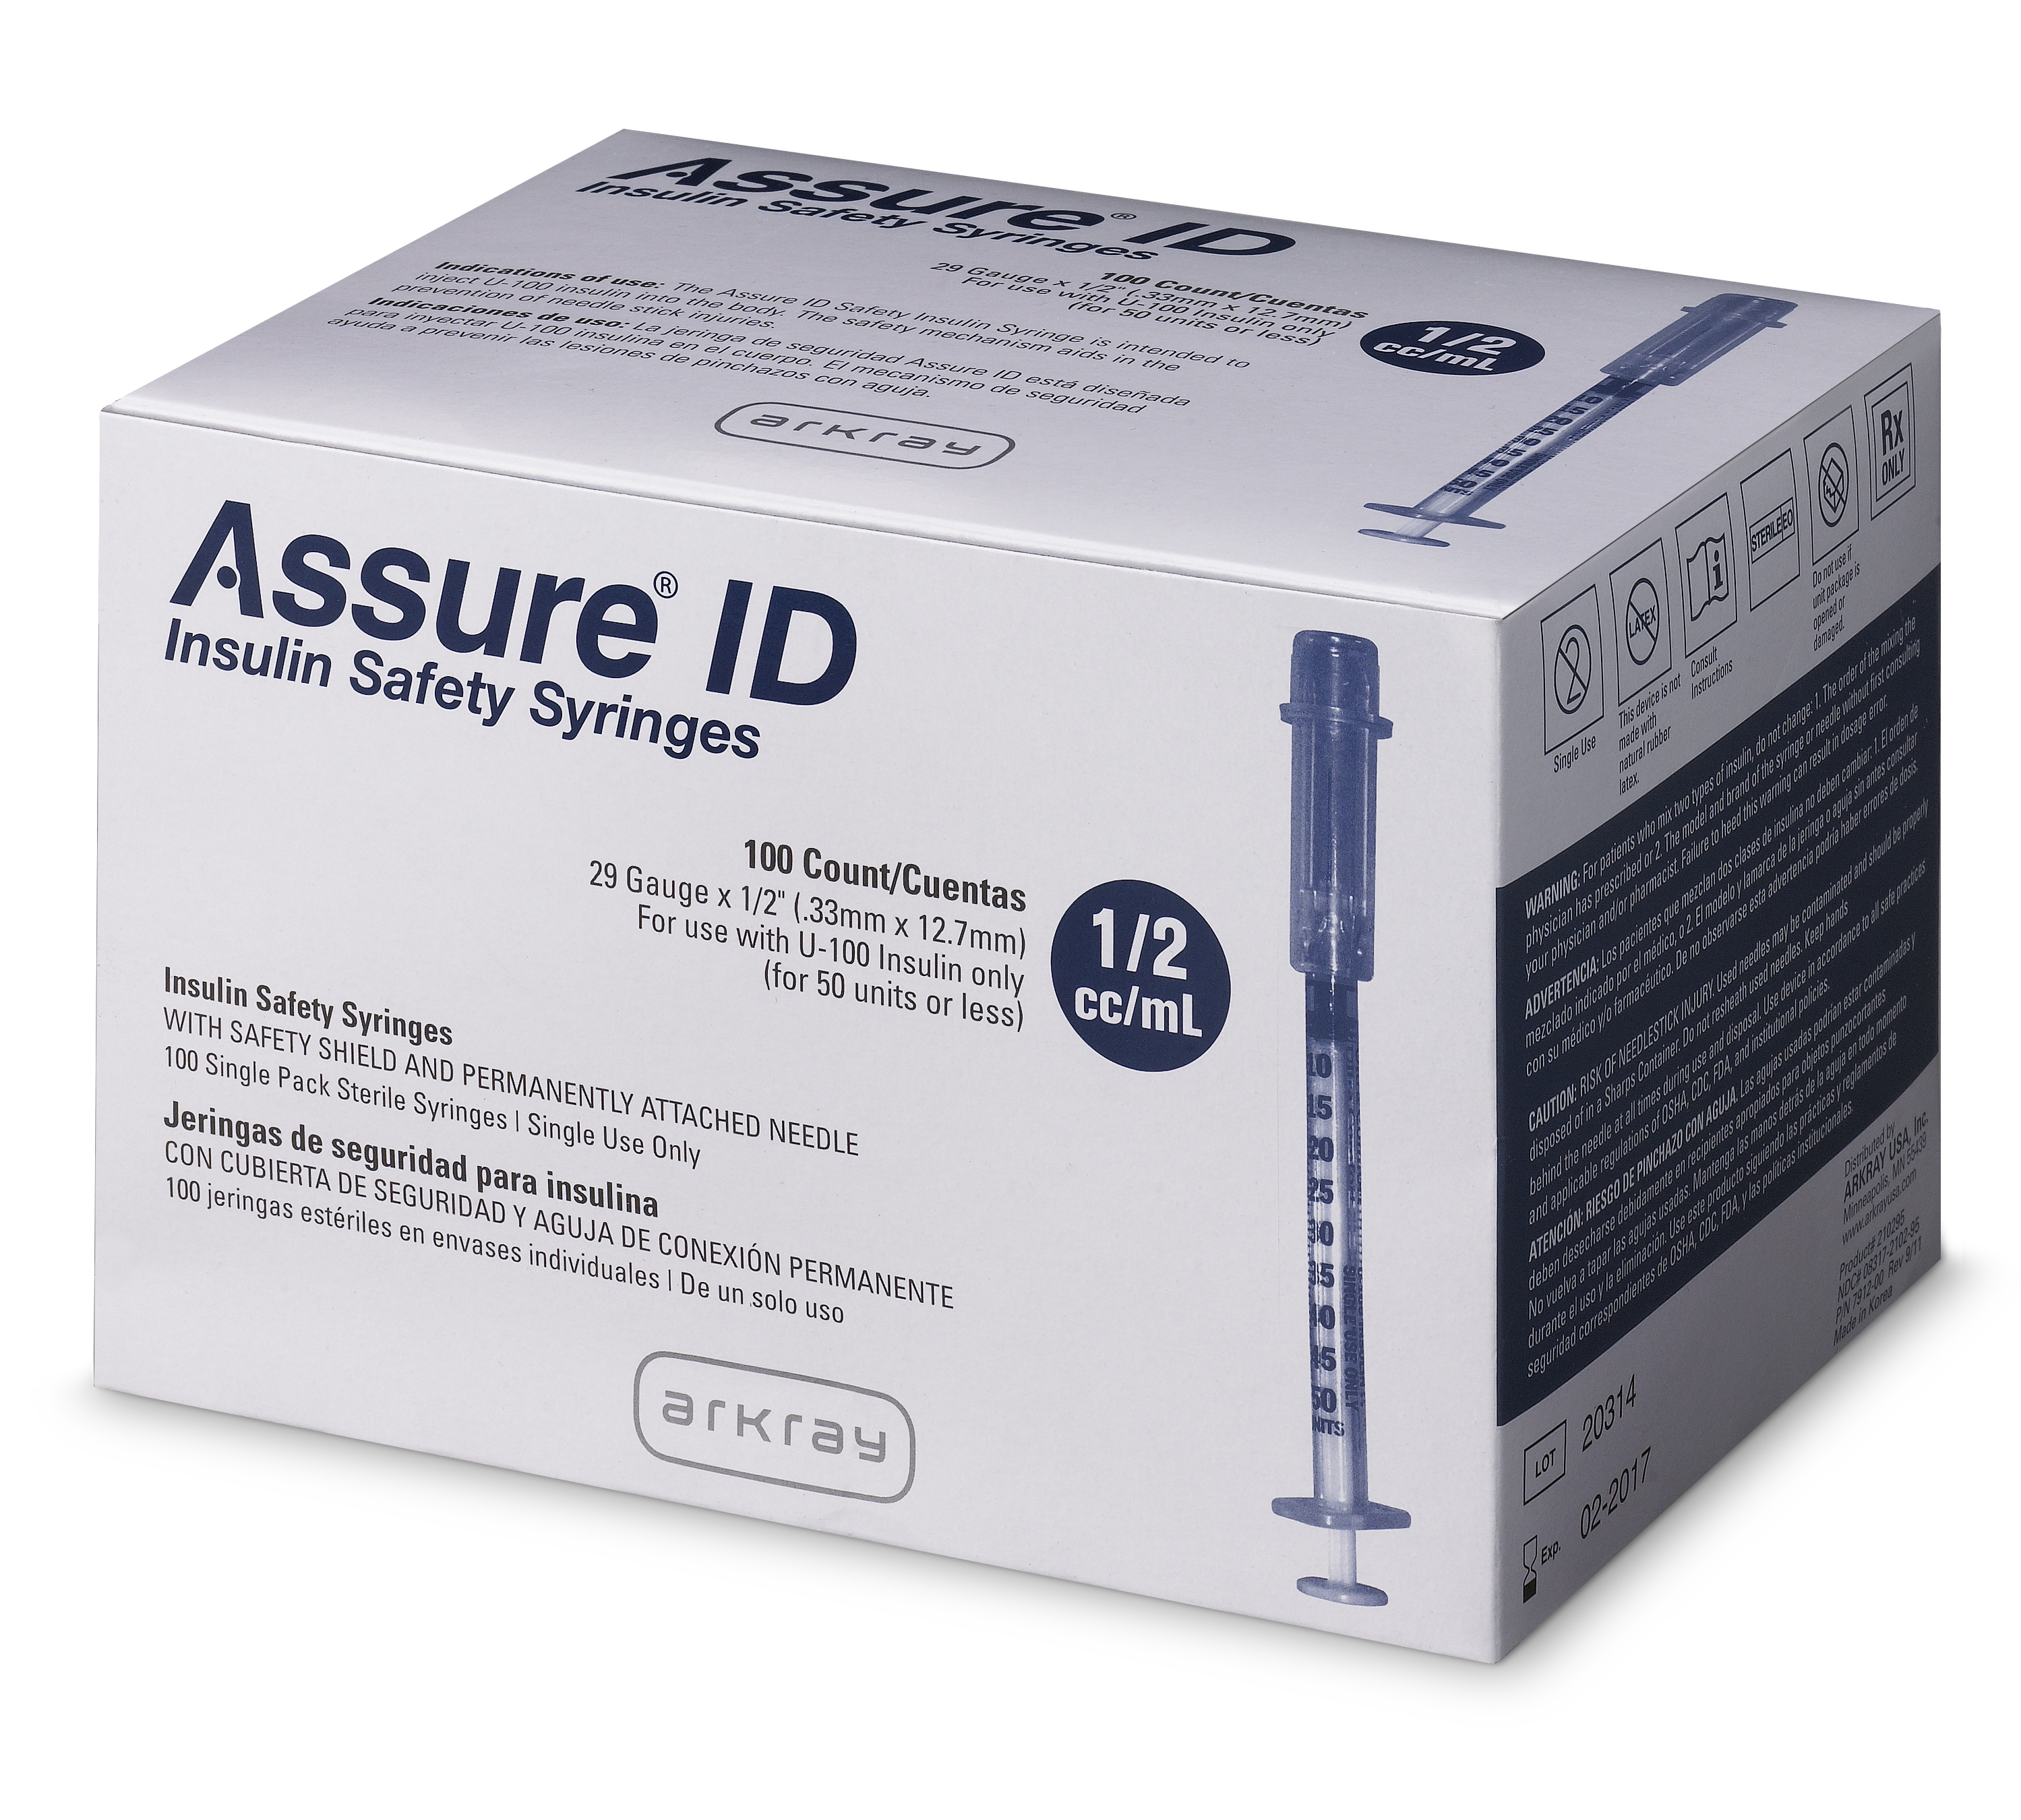 Assure Id Insulin Safety Syringes Arkray Usa